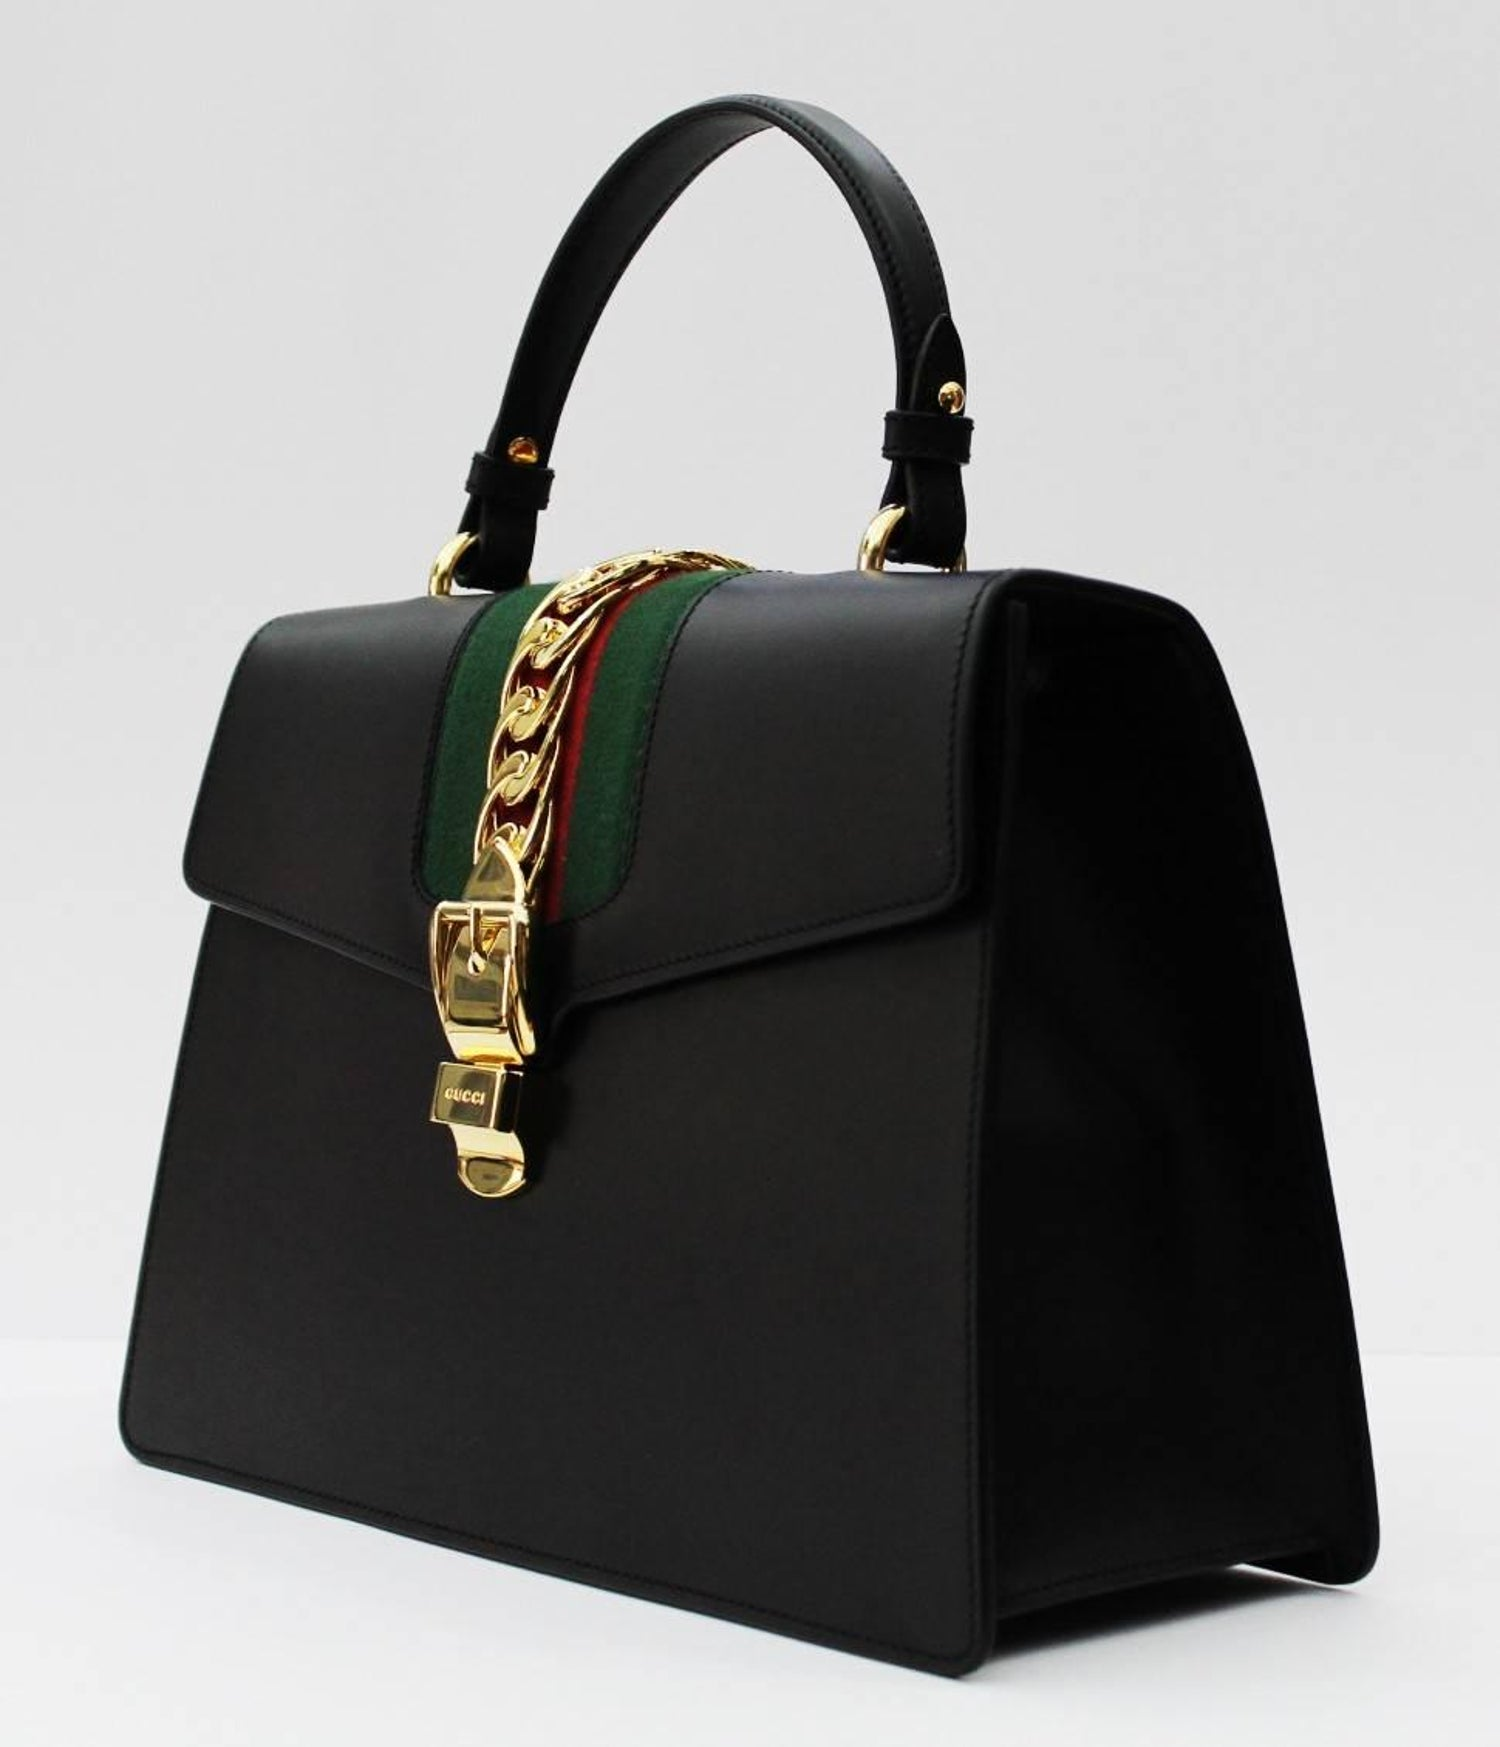 2967f8accbc Sylvie Medium Black Leather top handle bag at 1stdibs